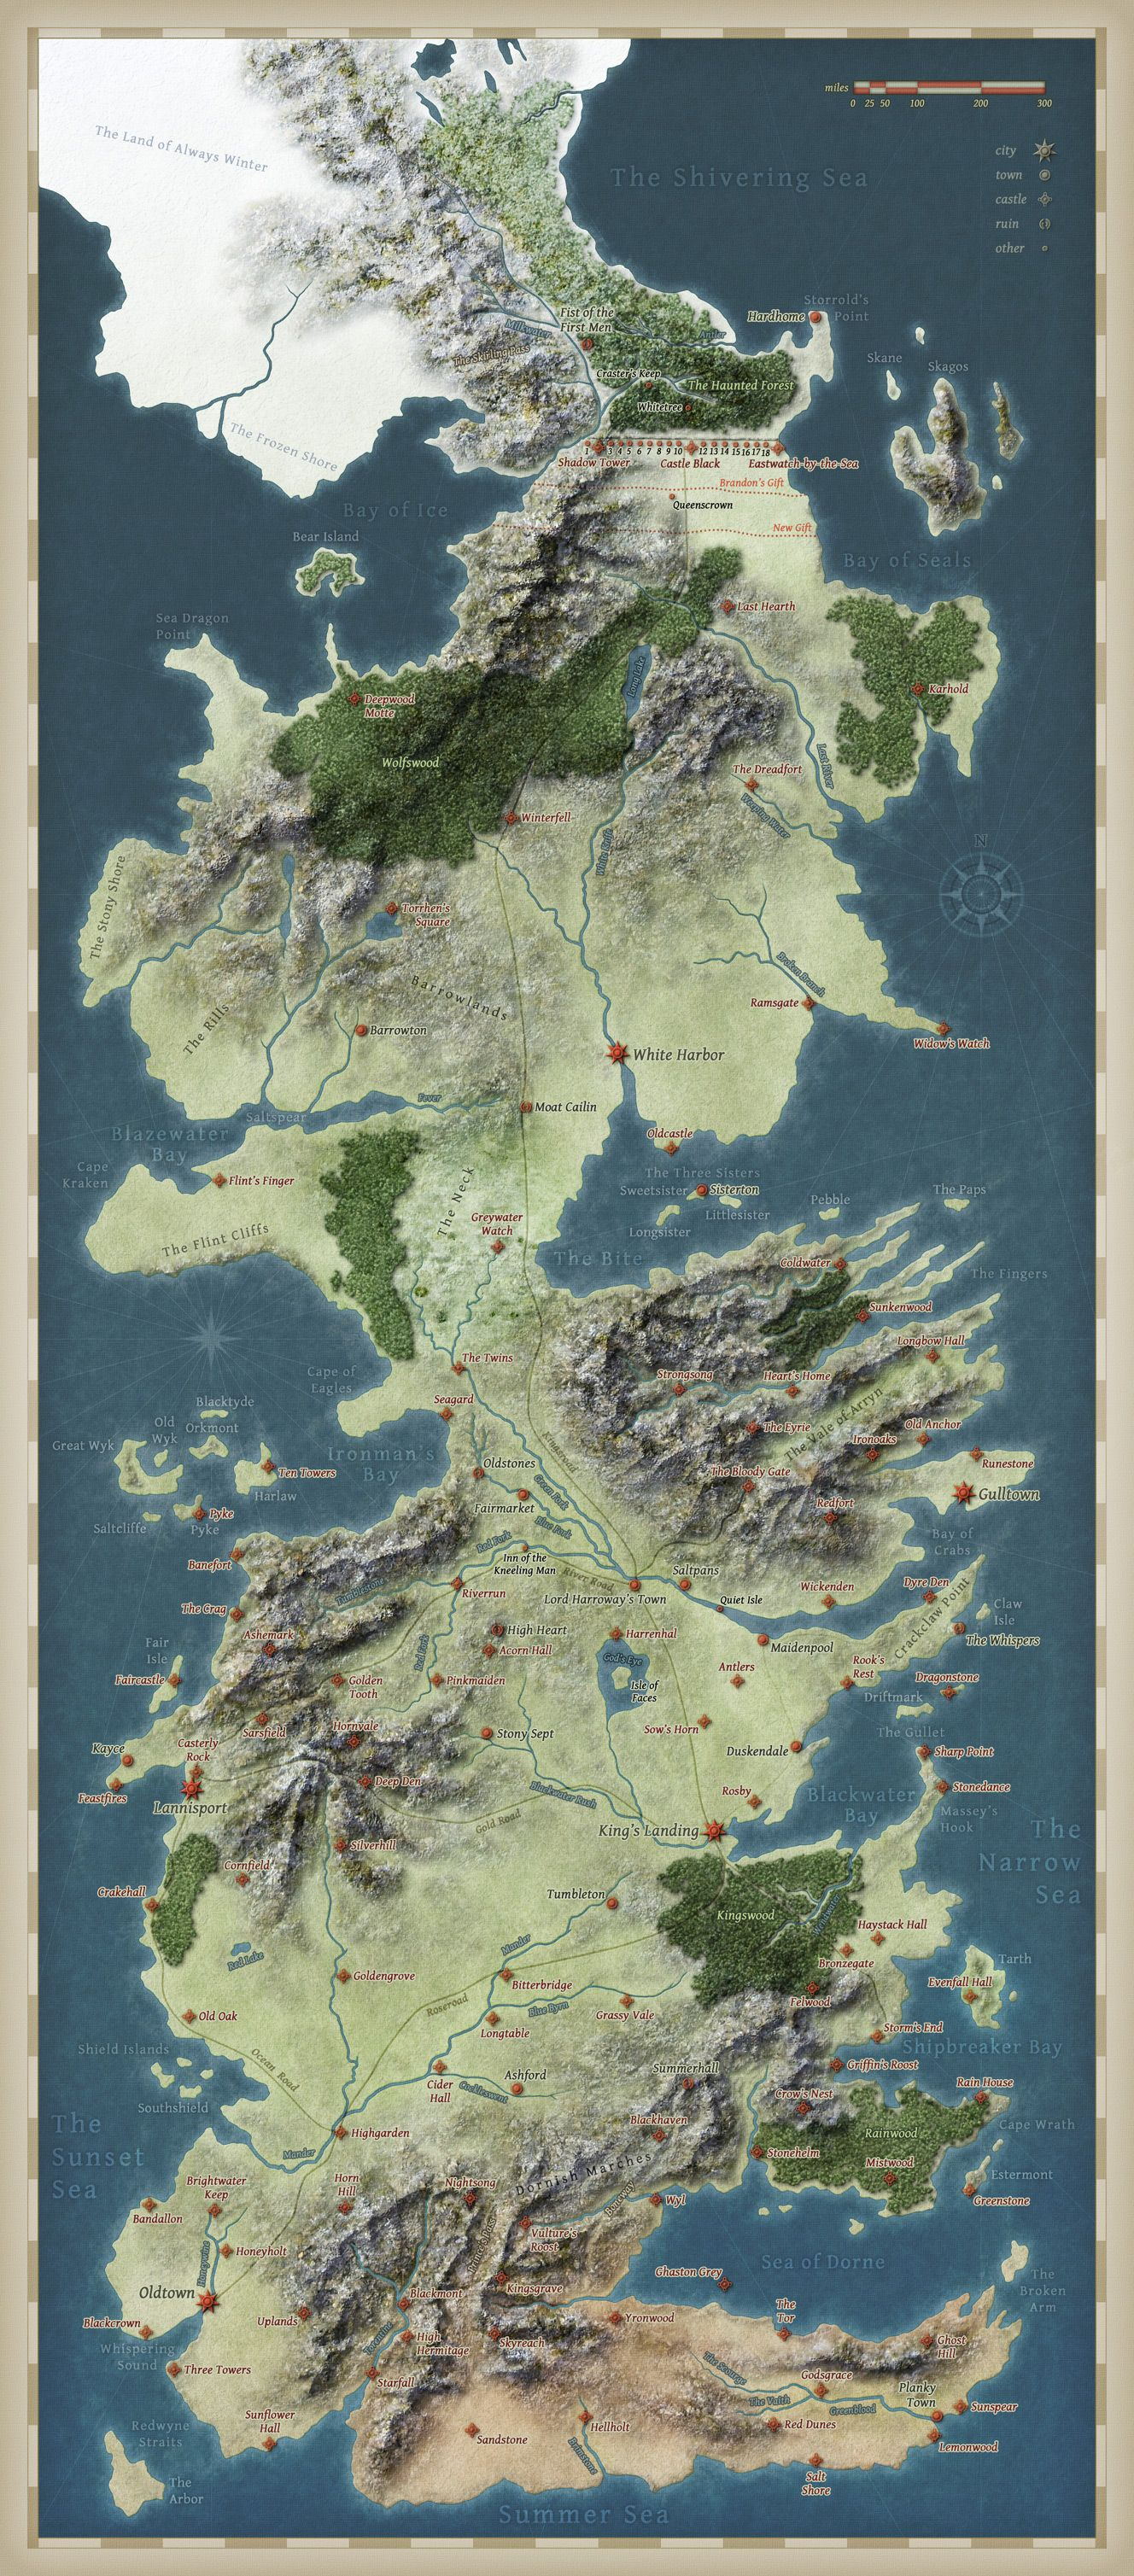 map of westeros from george r martins epic fantasy series a song of ice and fire and the hbo show game of thrones